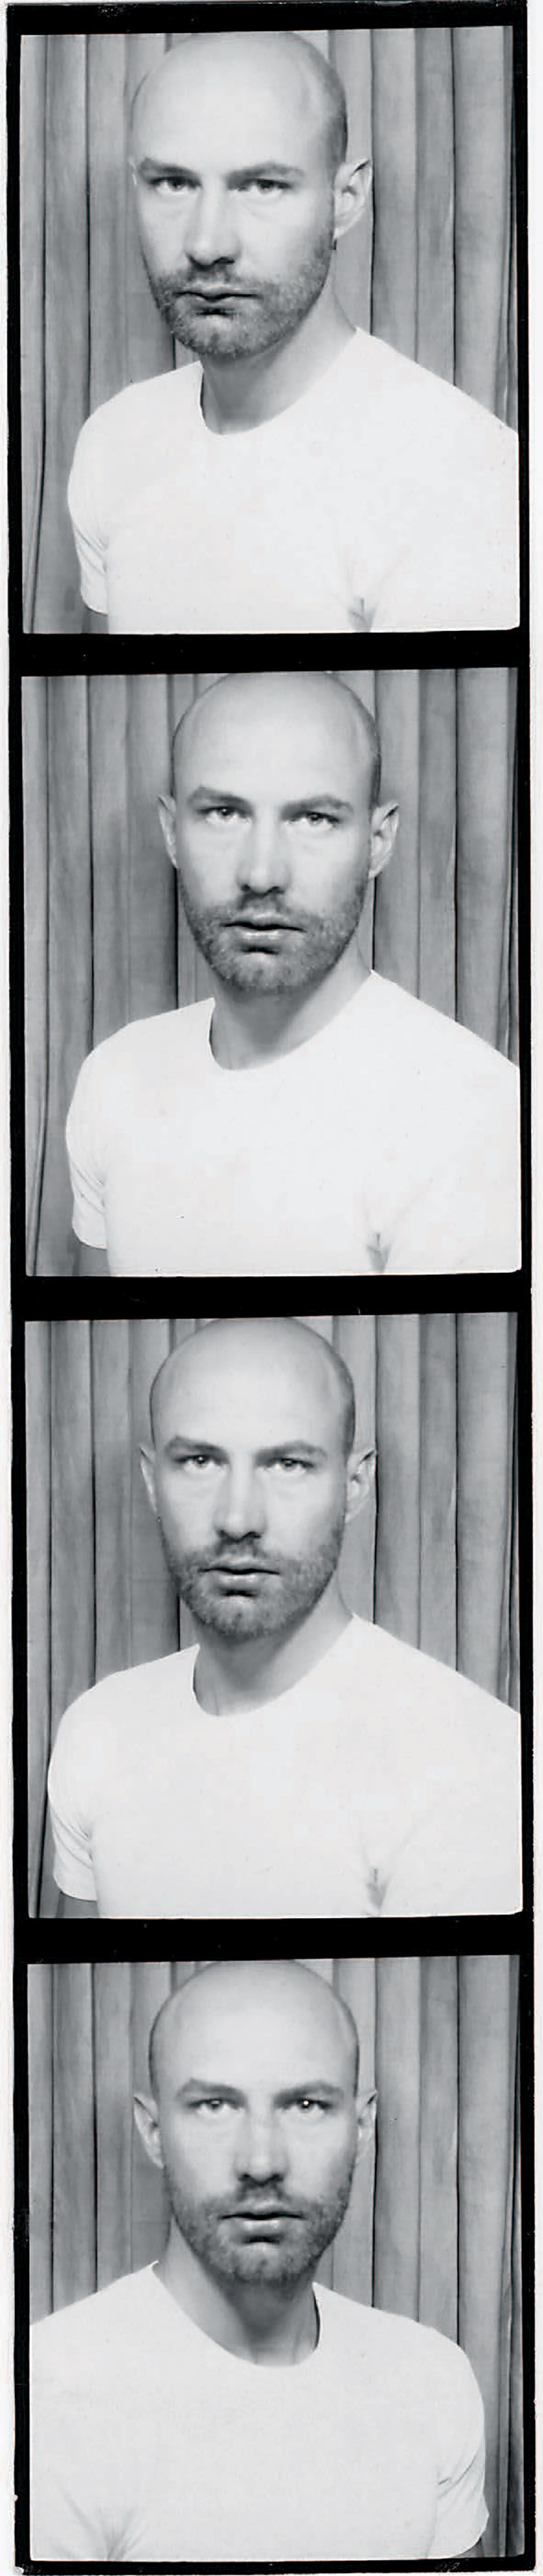 Photo-booth strip of Douglas Crimp, ca. 1970s.